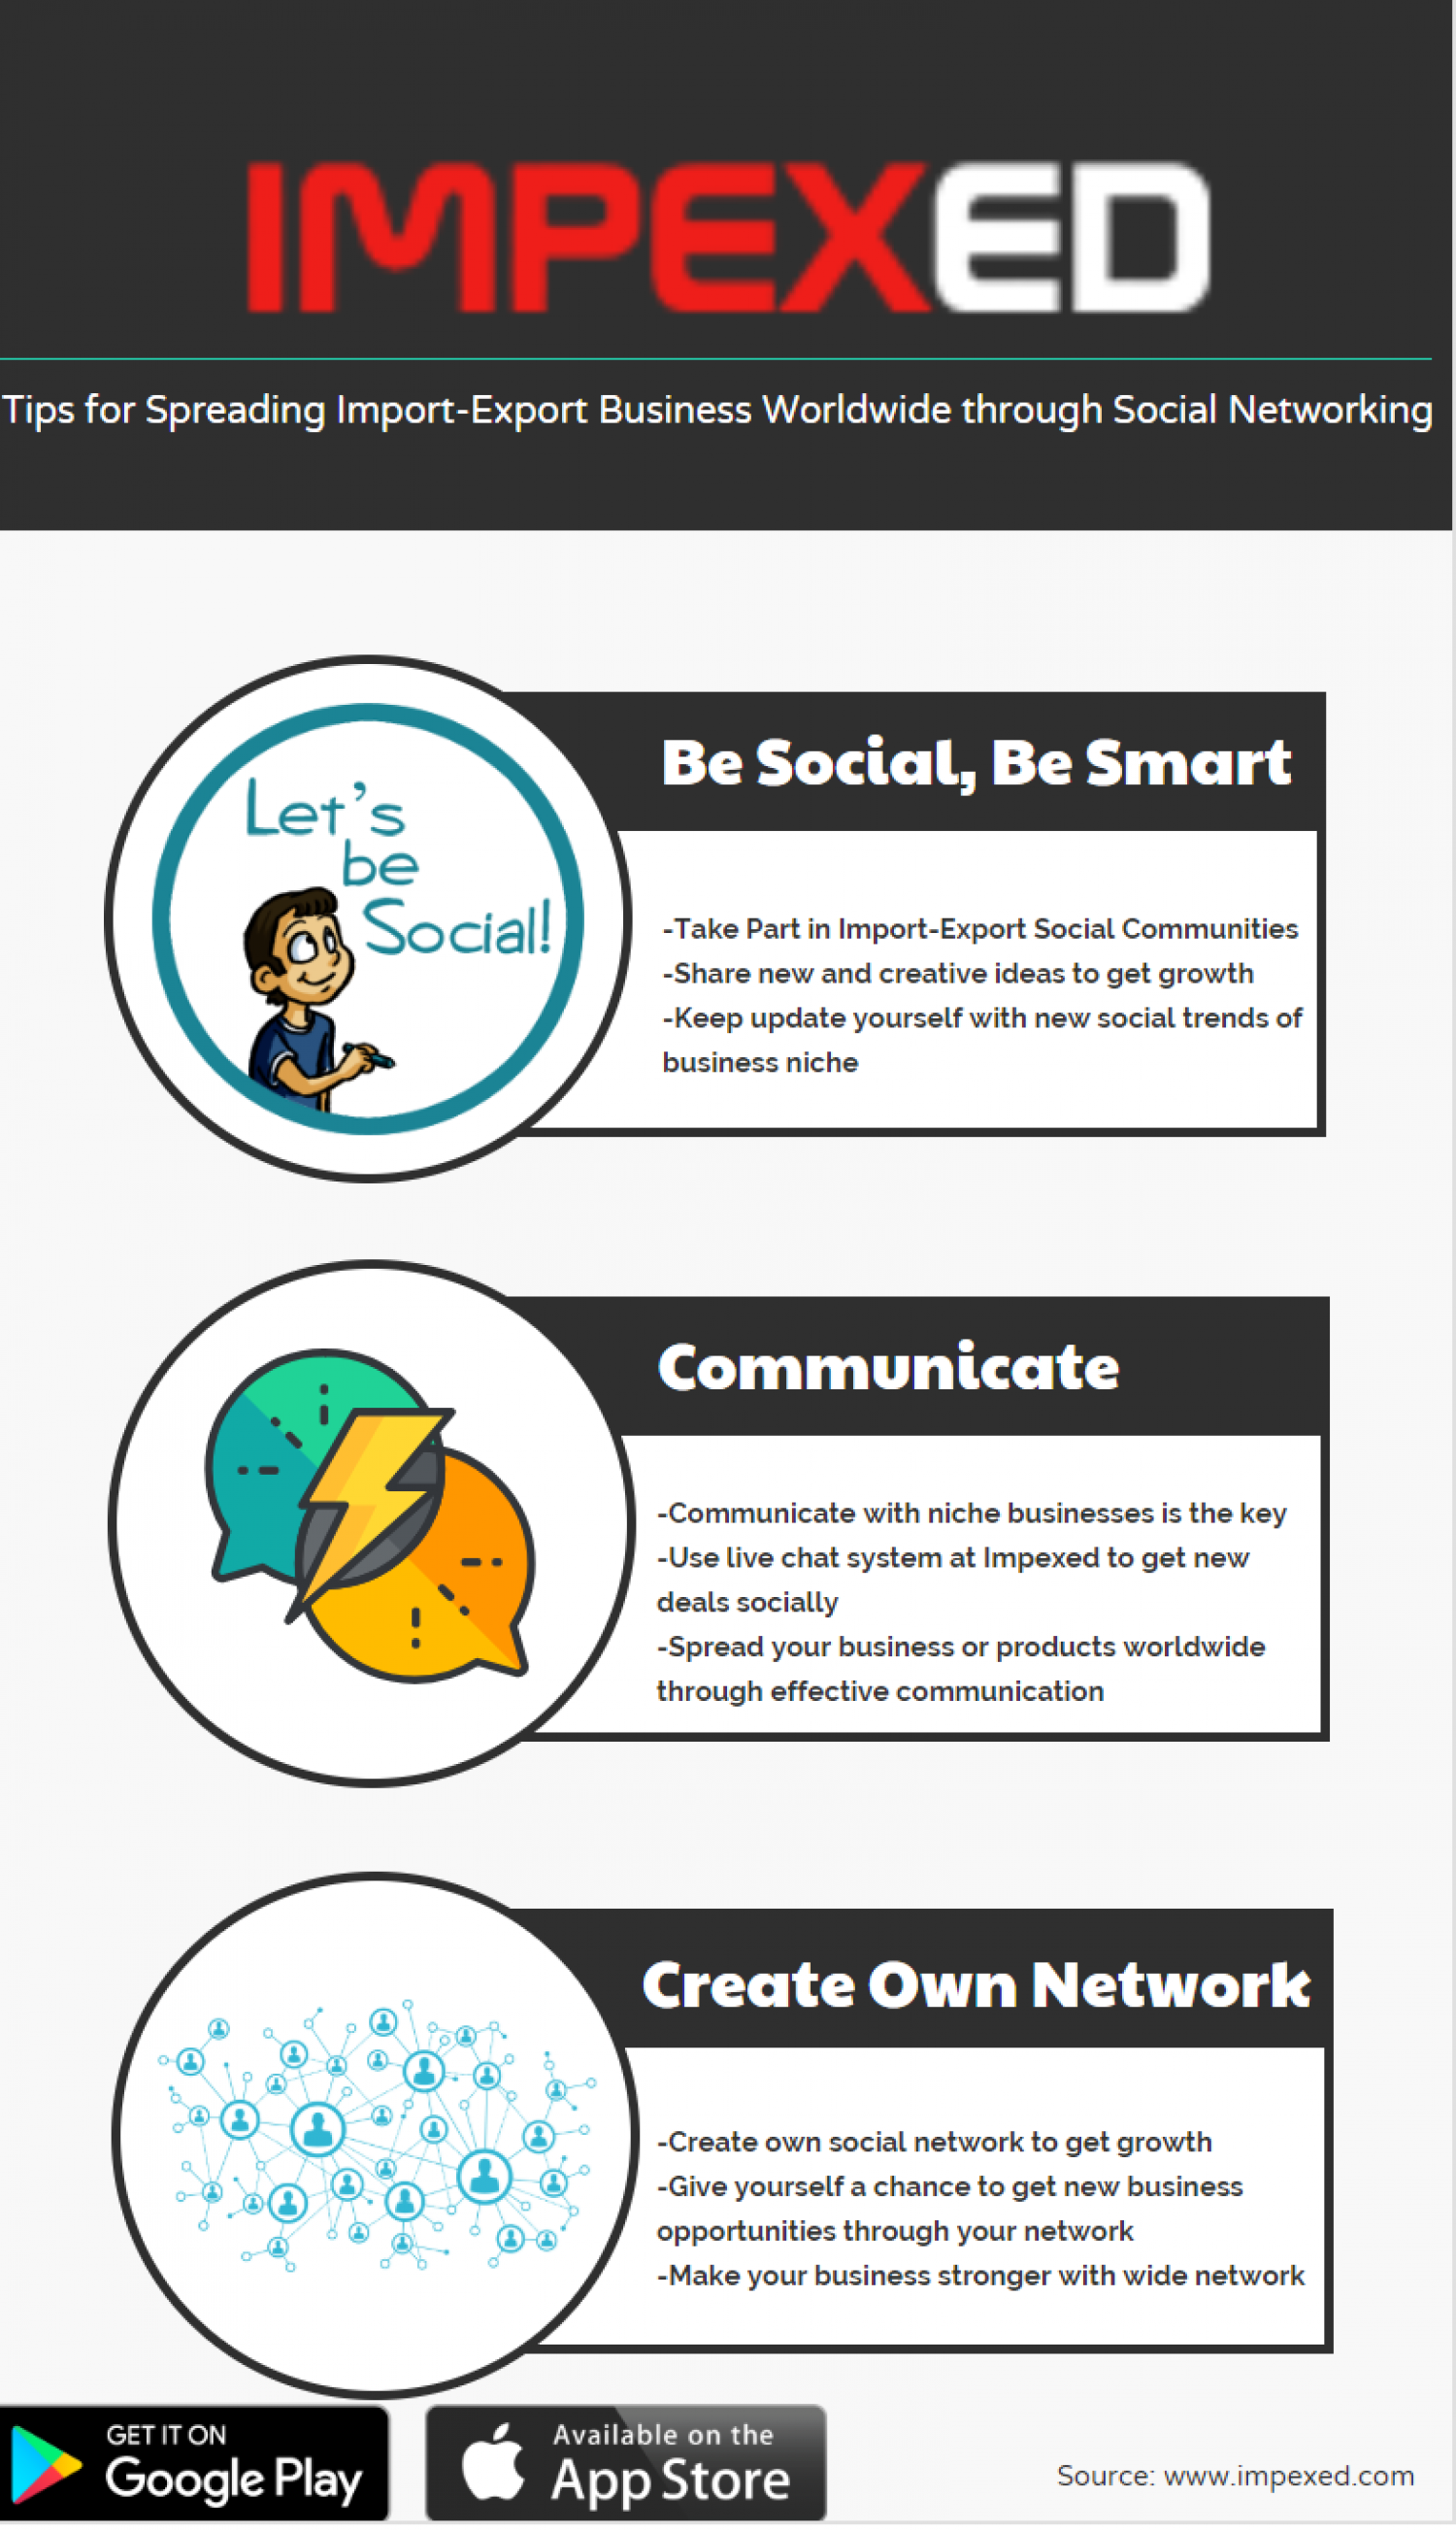 Impexed - Tips for spreading import-export business worldwide through social networking Infographic